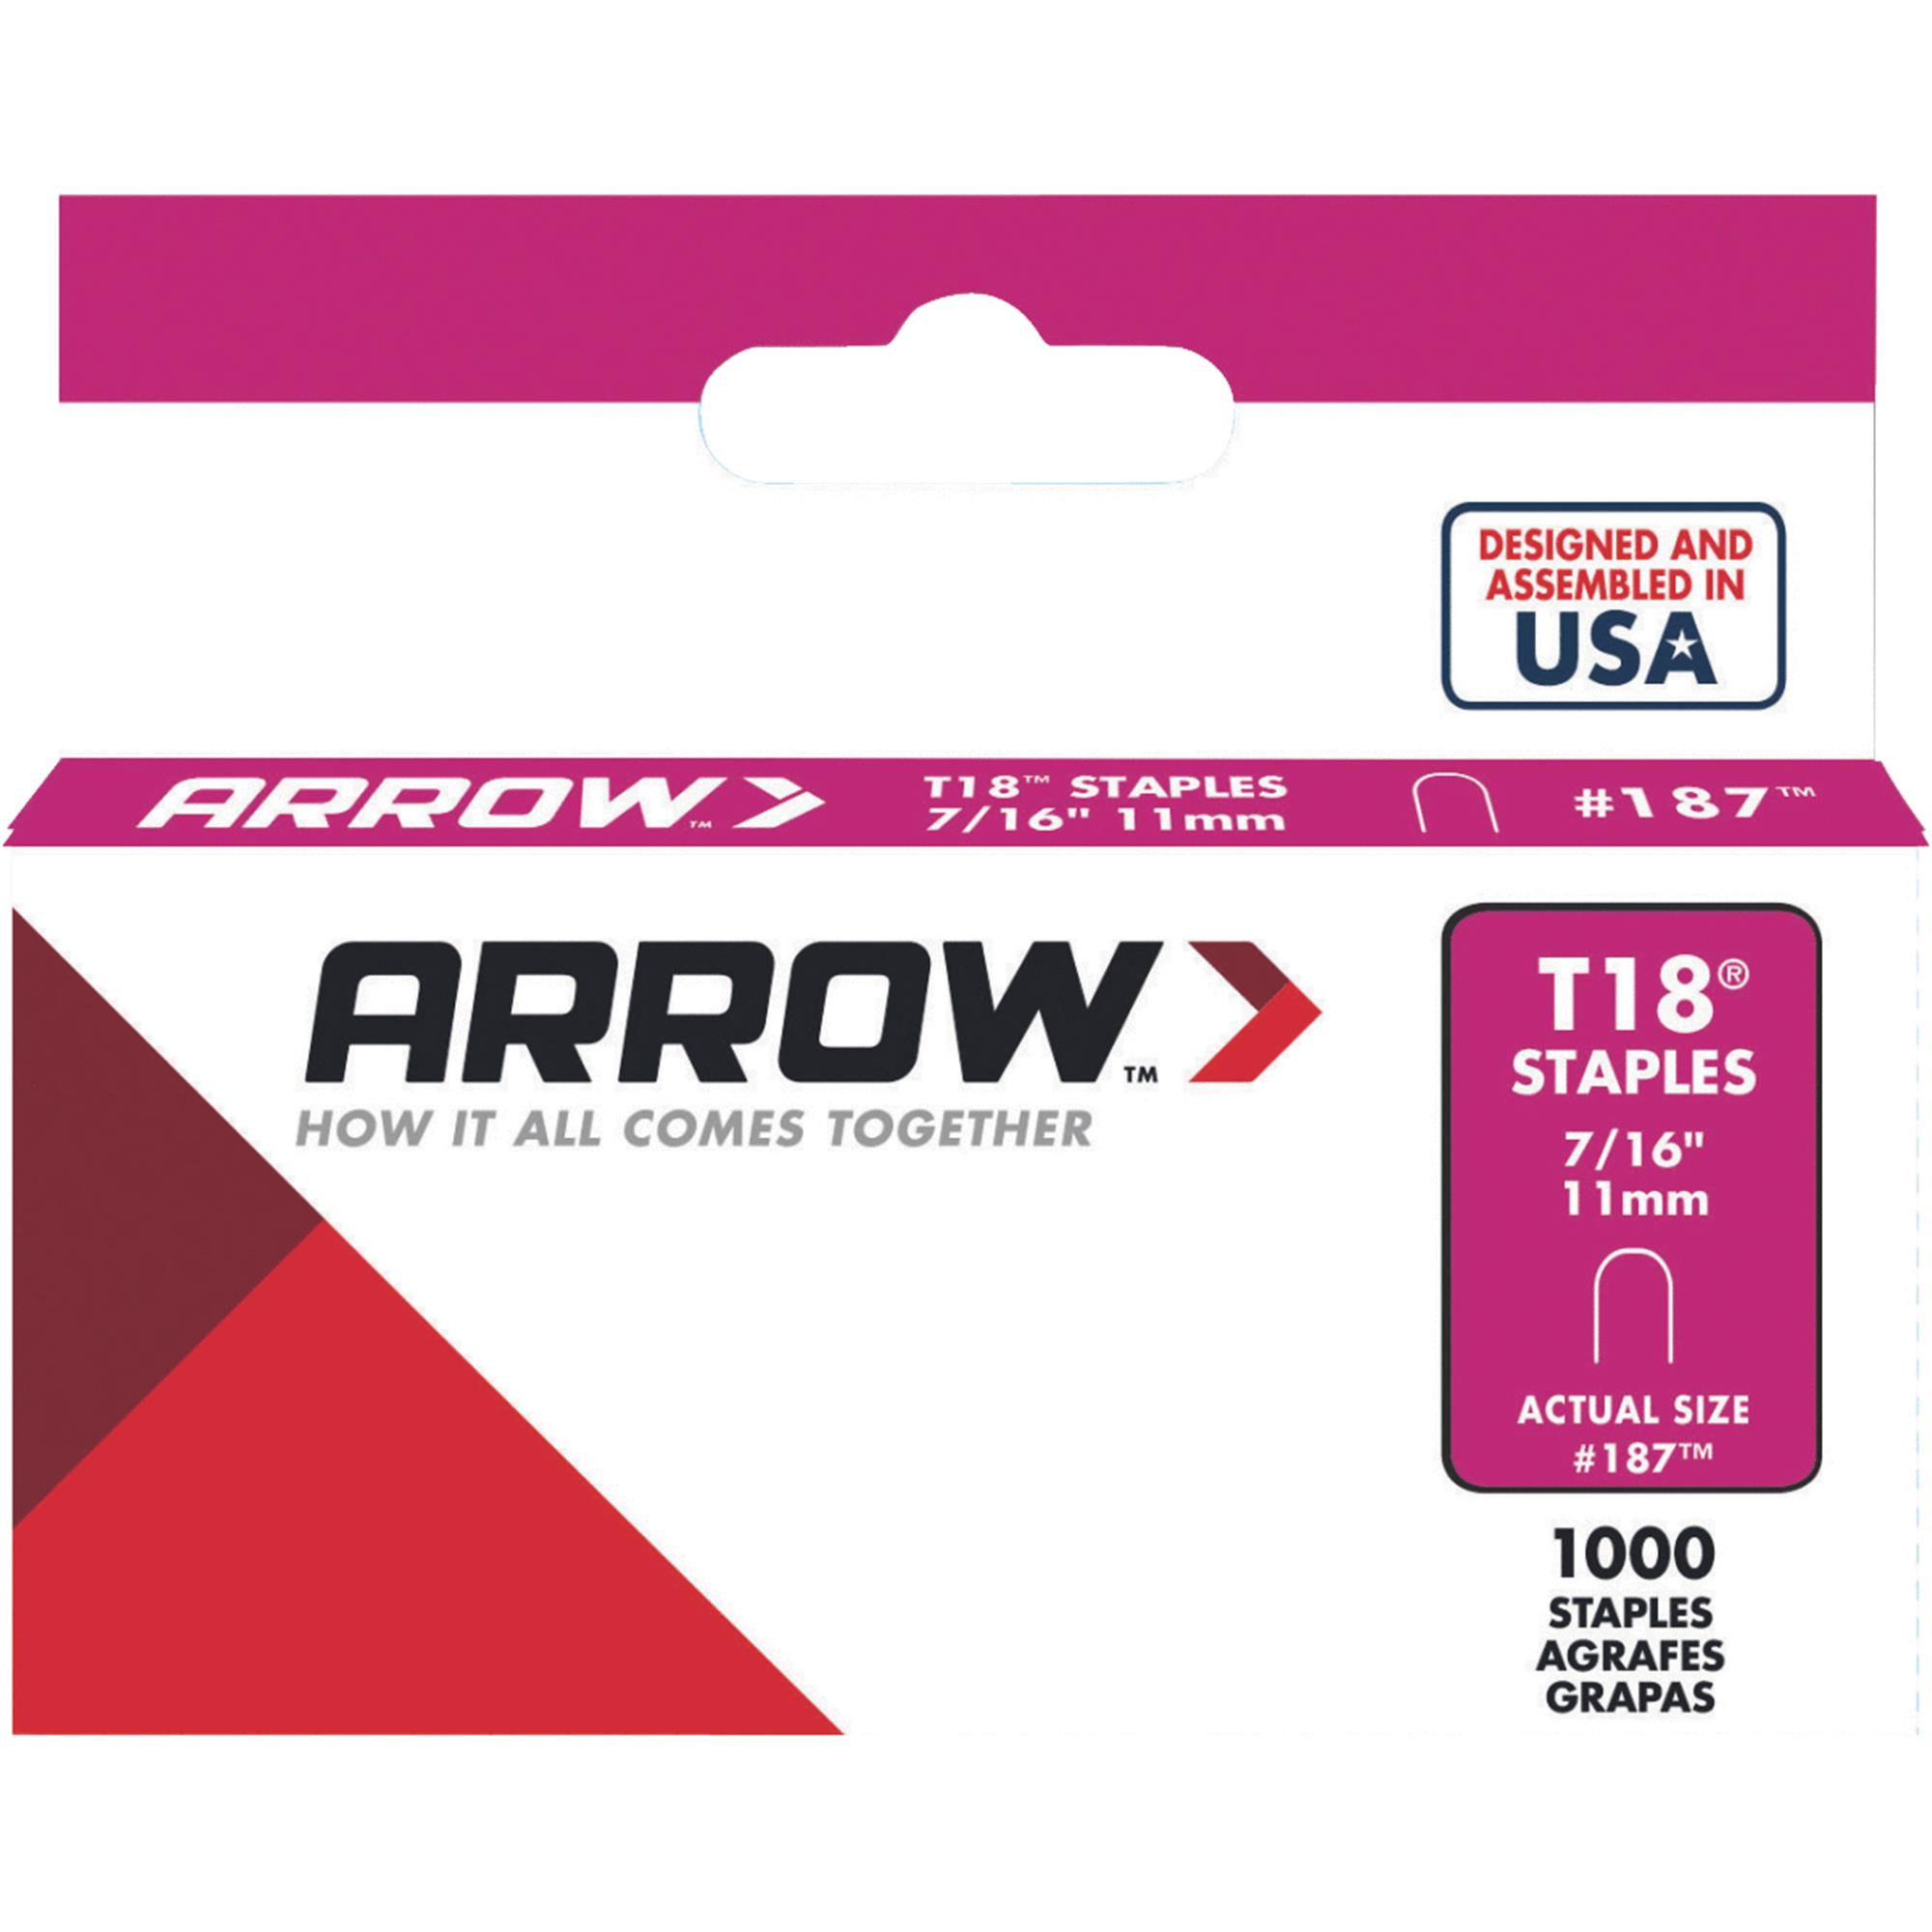 Arrow 7/16-Inch T18 Staples, 1000 Count